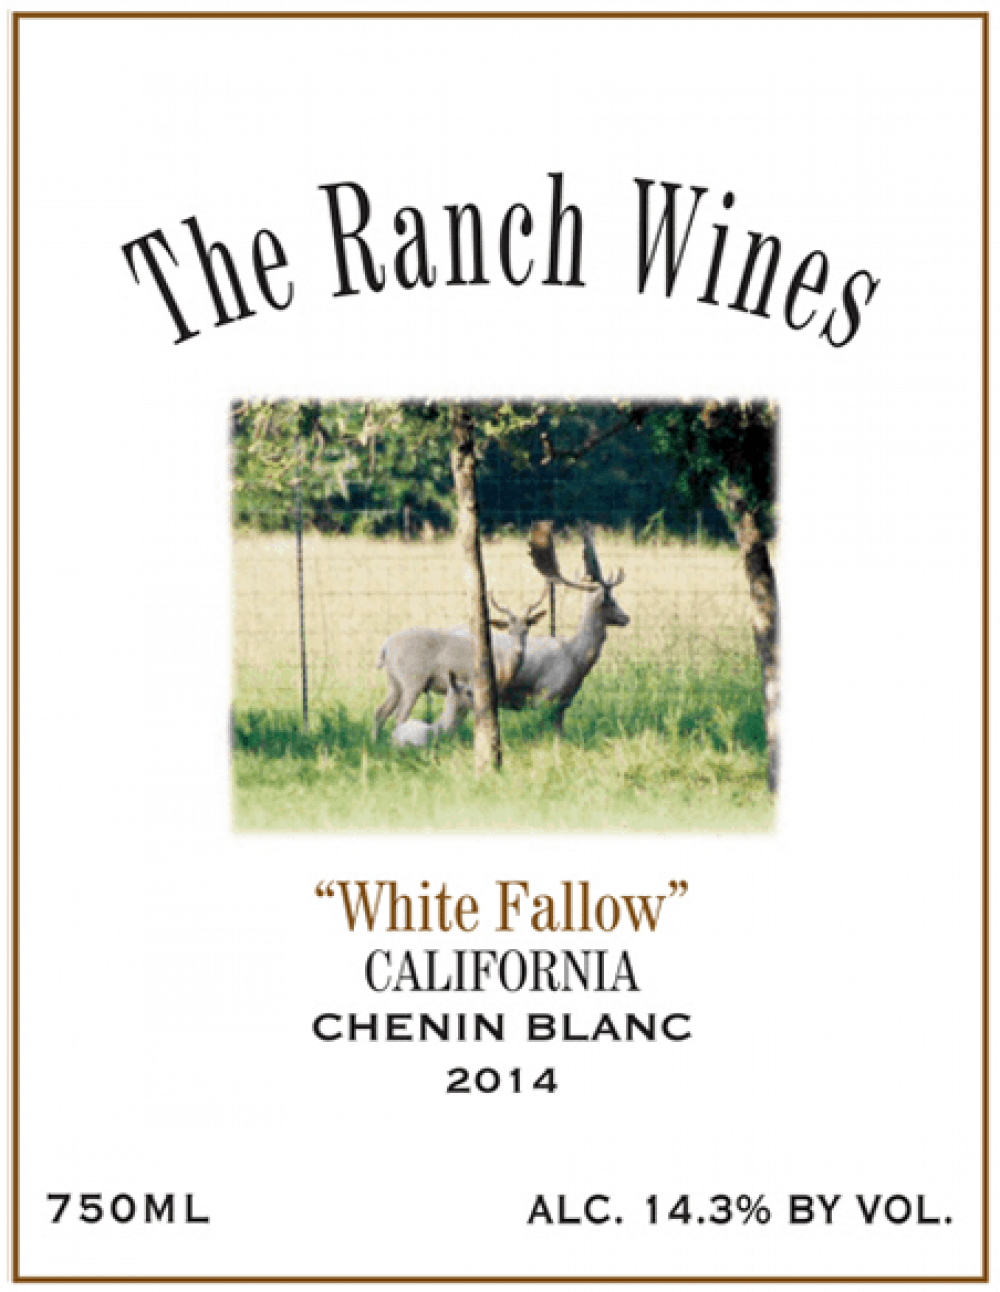 California Chenin Blanc White Fallow